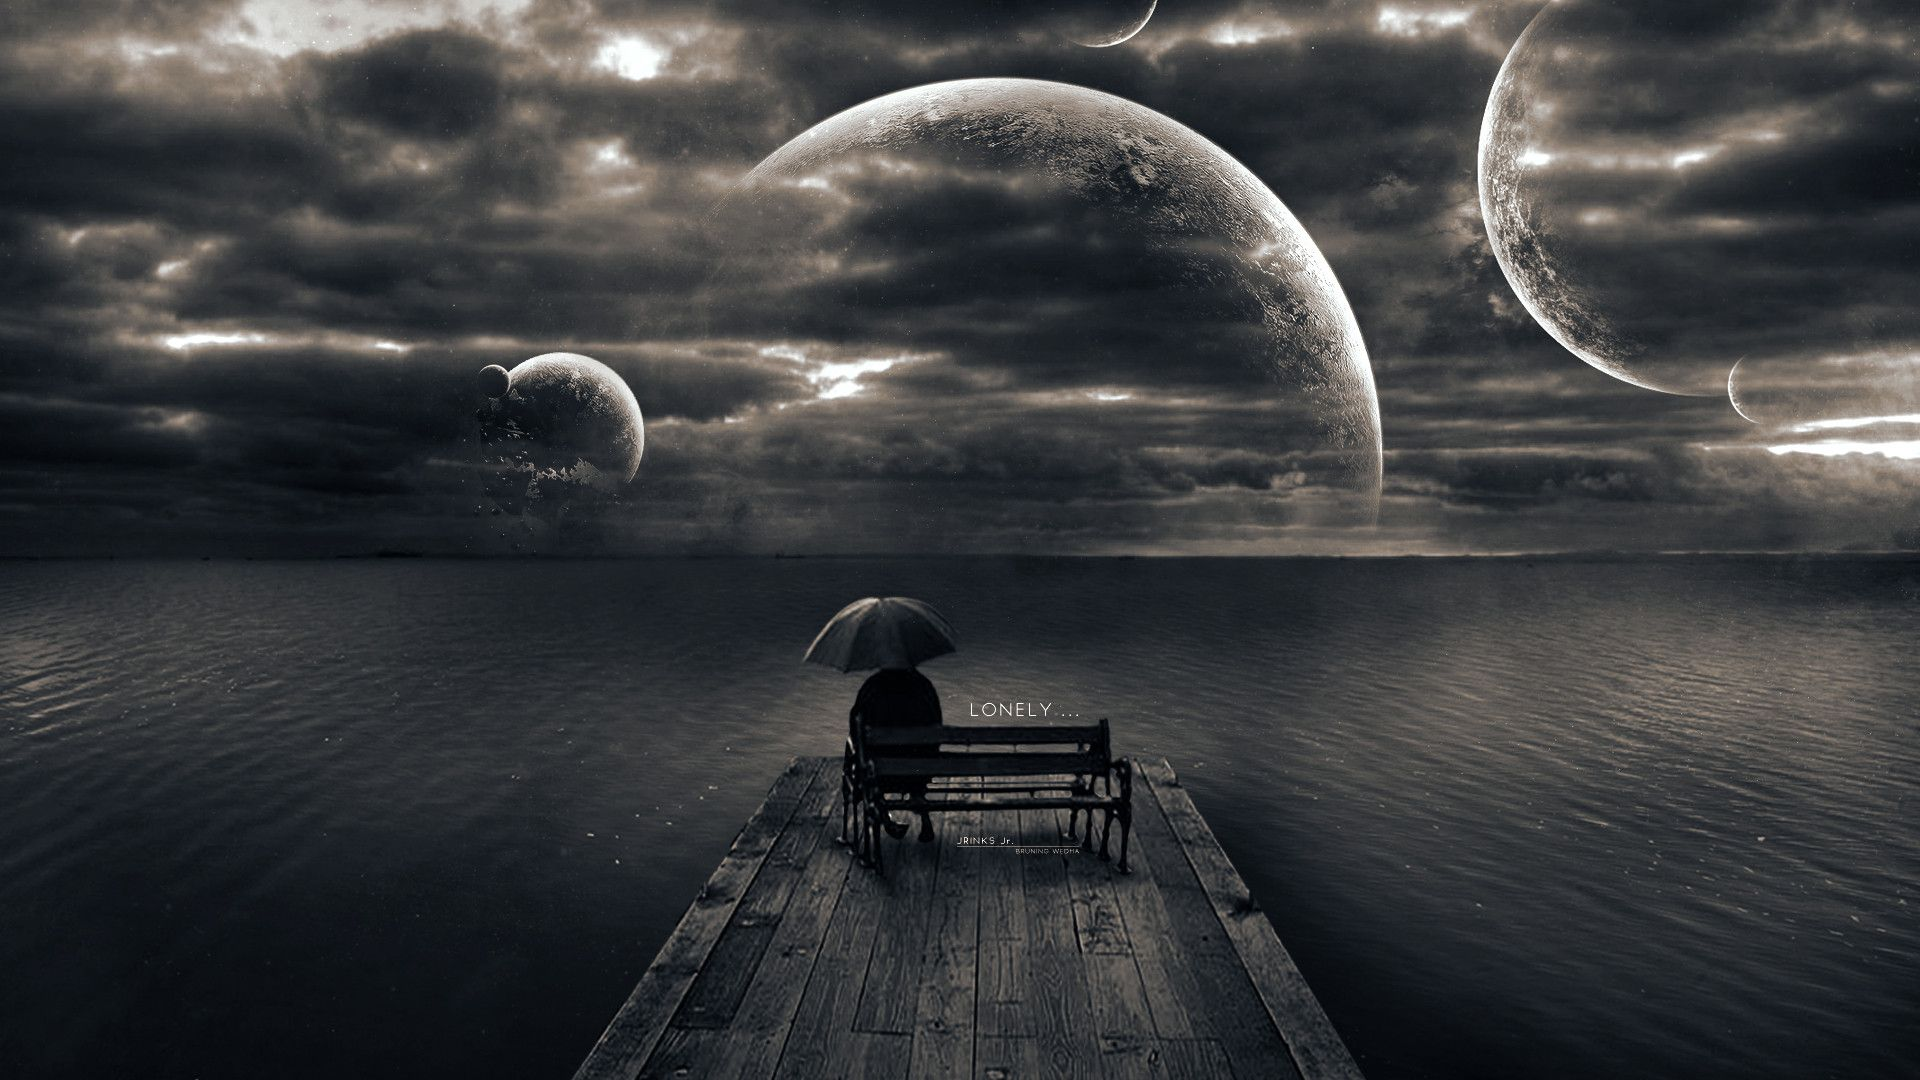 Lonely Wallpapers for Desktop V Lonely Collection 1440×900 ...